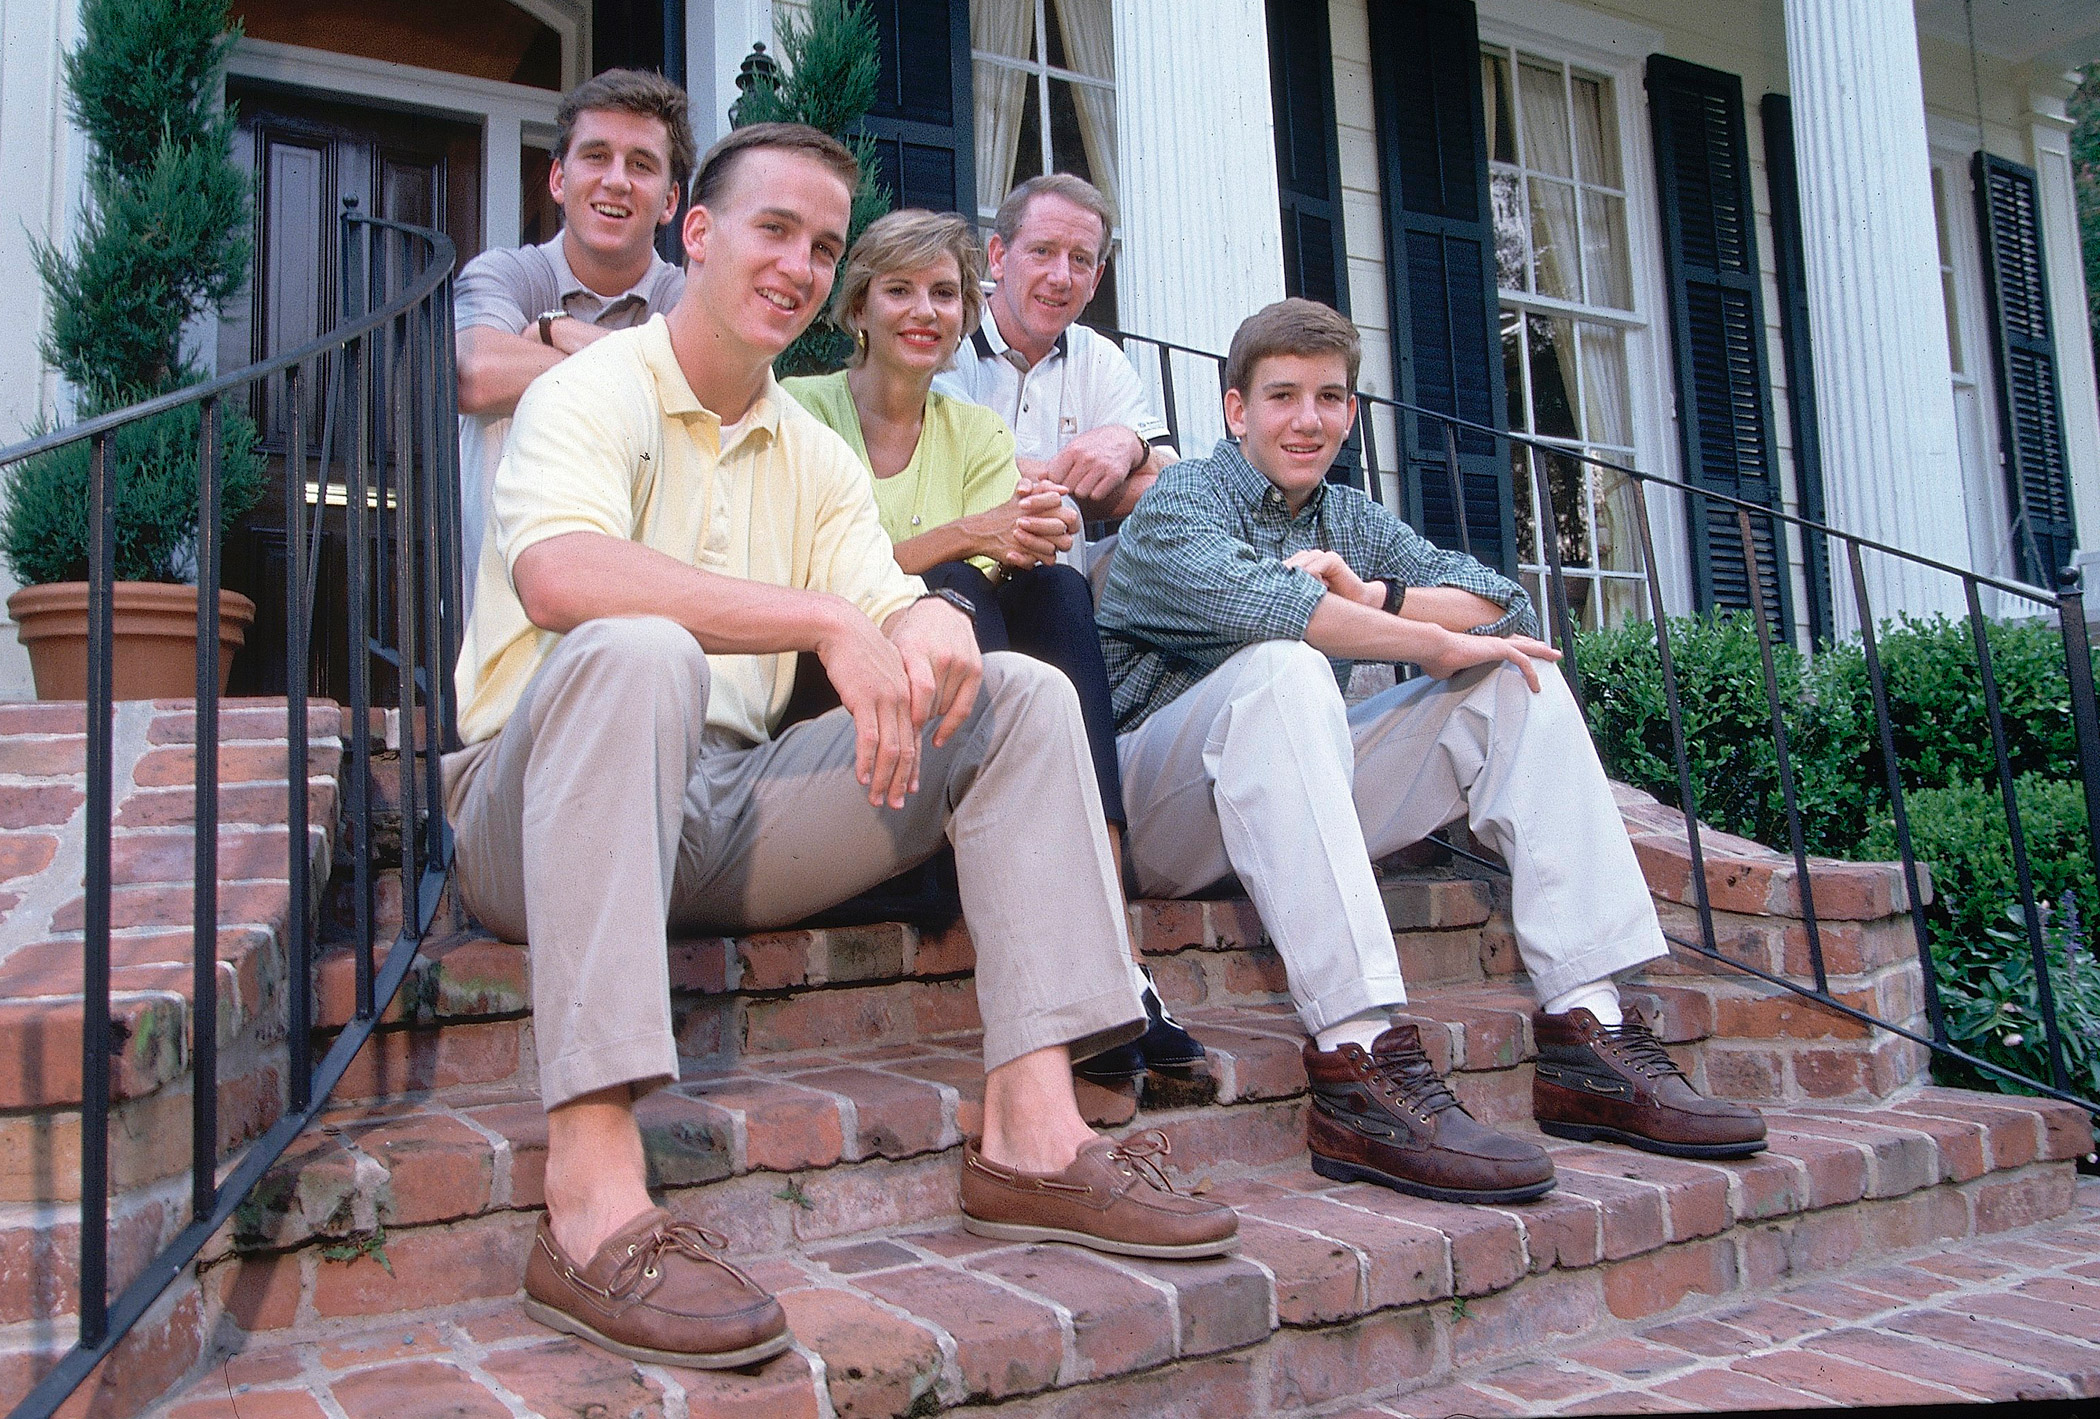 From front left, Peyton Manning poses for a portrait with brother Cooper, mother Olivia, father Archie and brother Eli at their home in                                   New Orleans in July 1996.